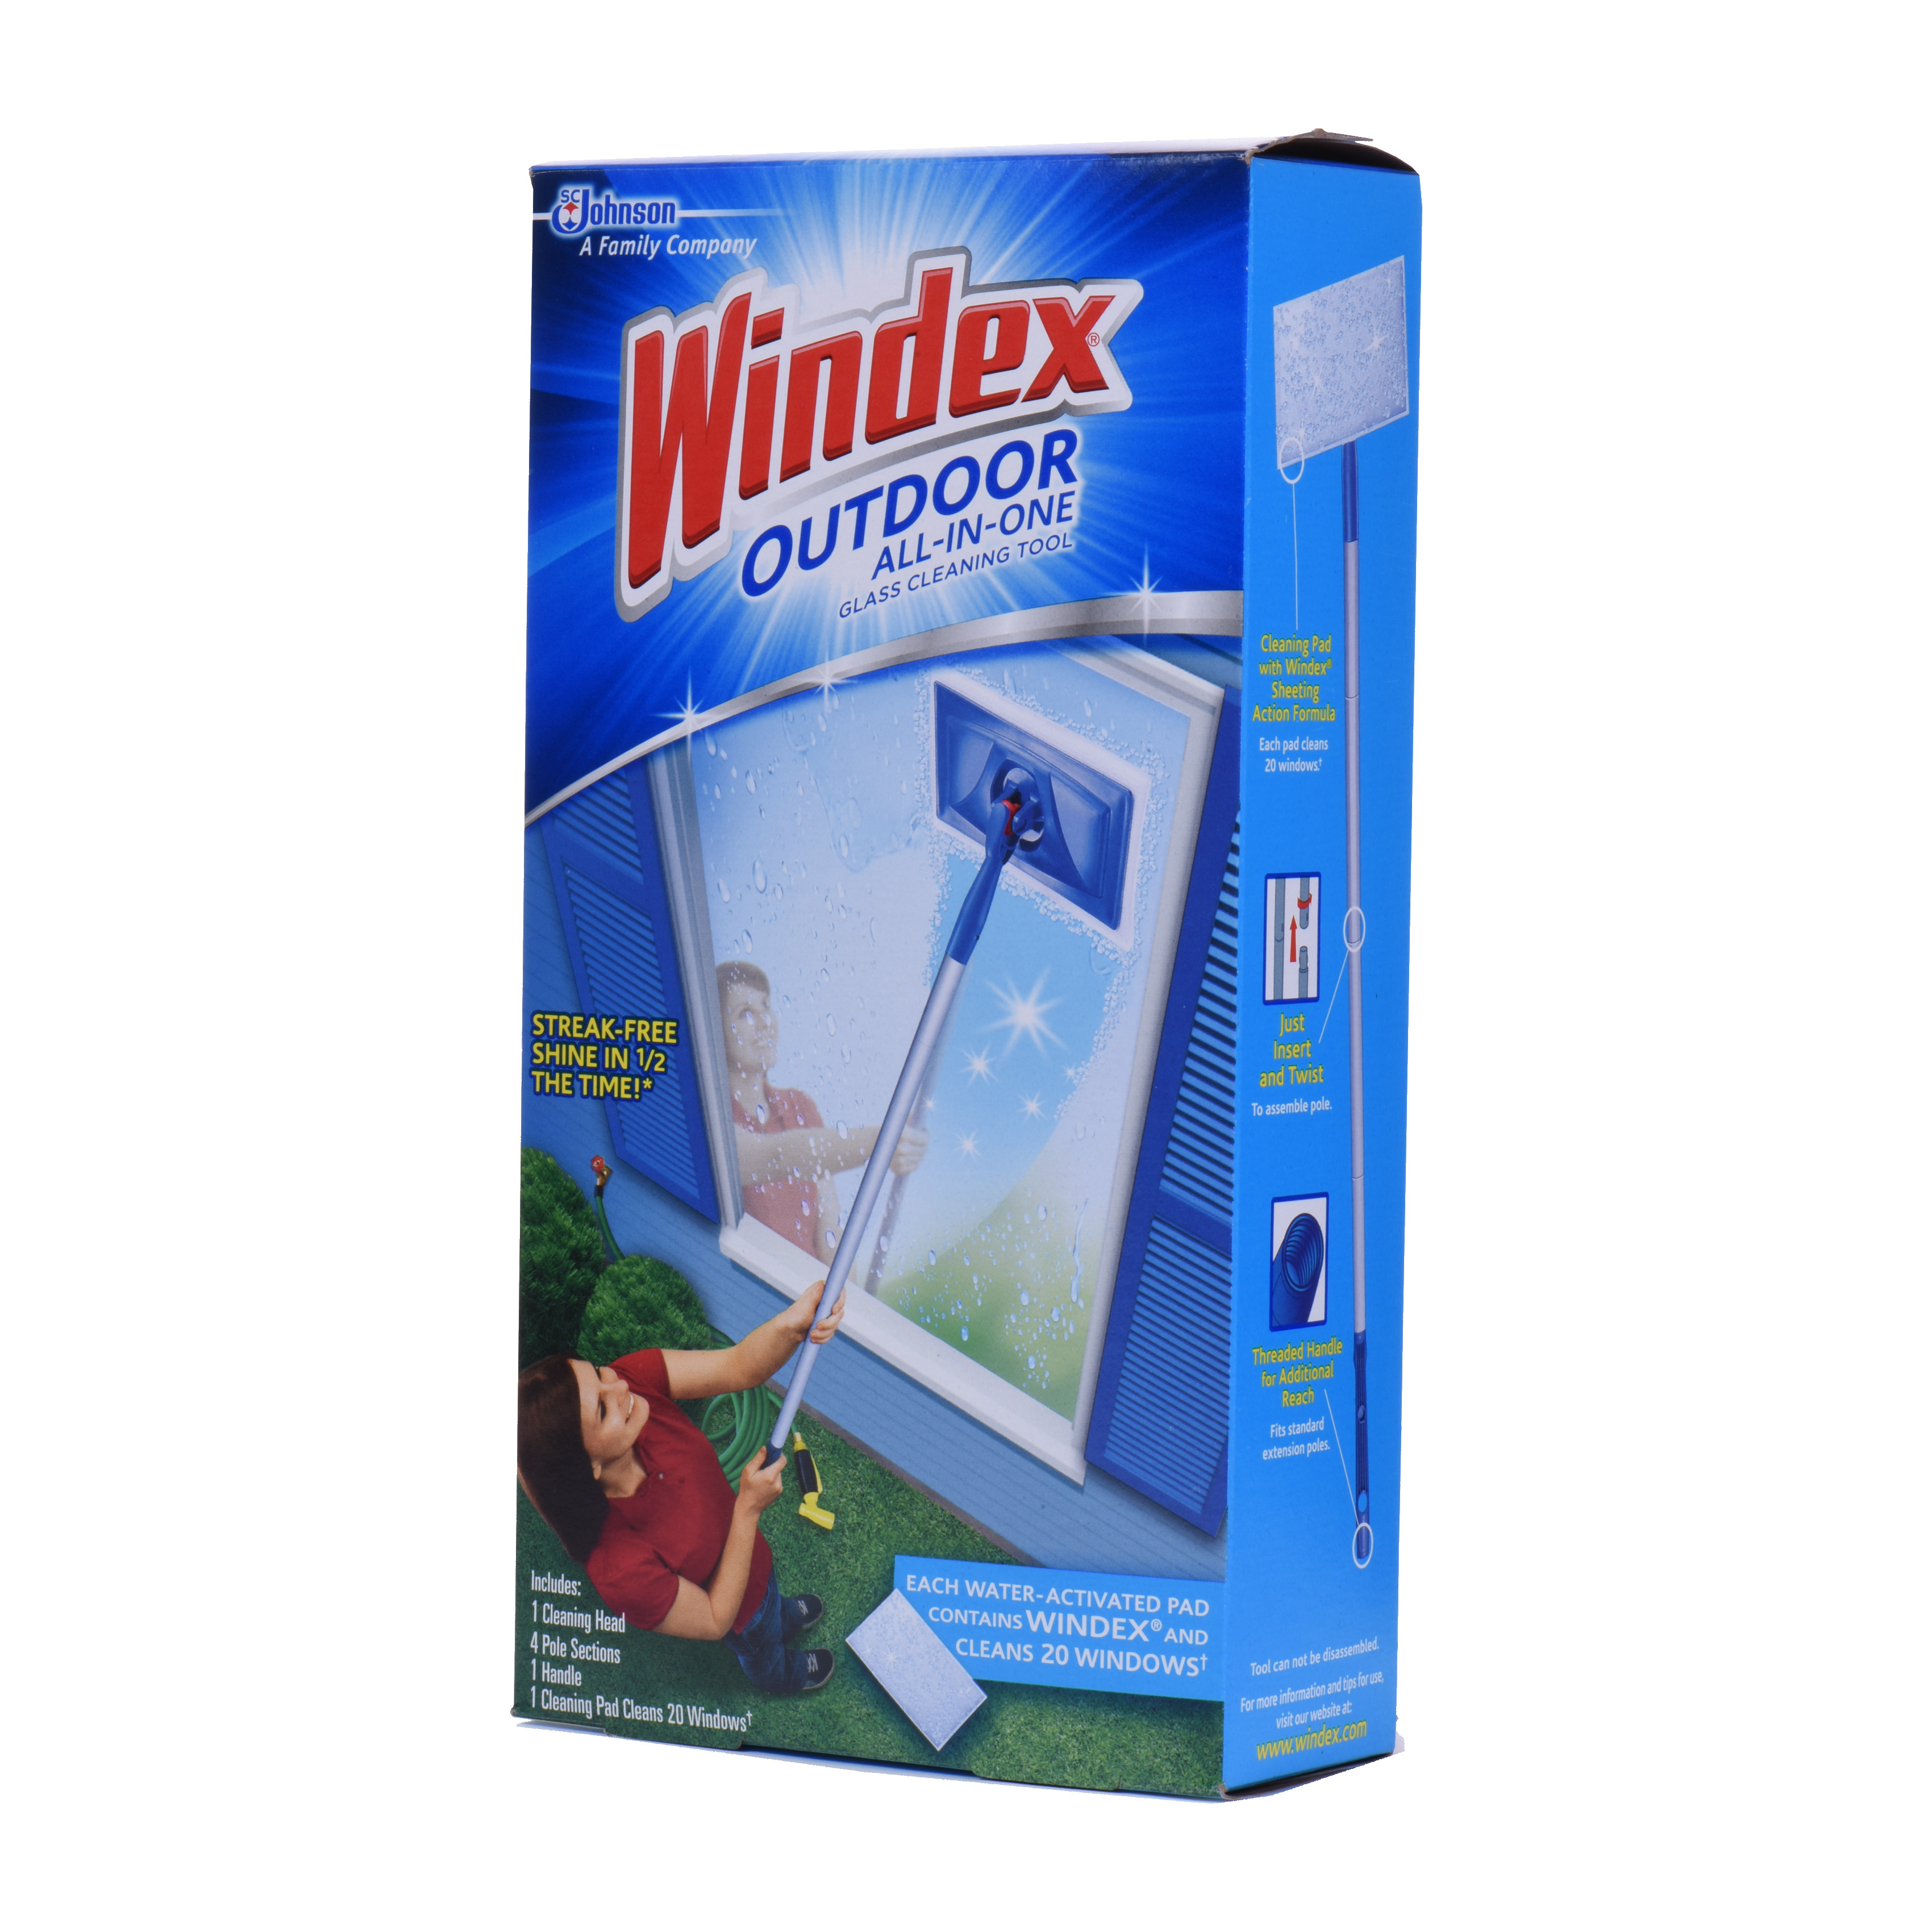 Windex Outdoor All-in One Glass Cleaning Tool Starter Kit - Walmart.com